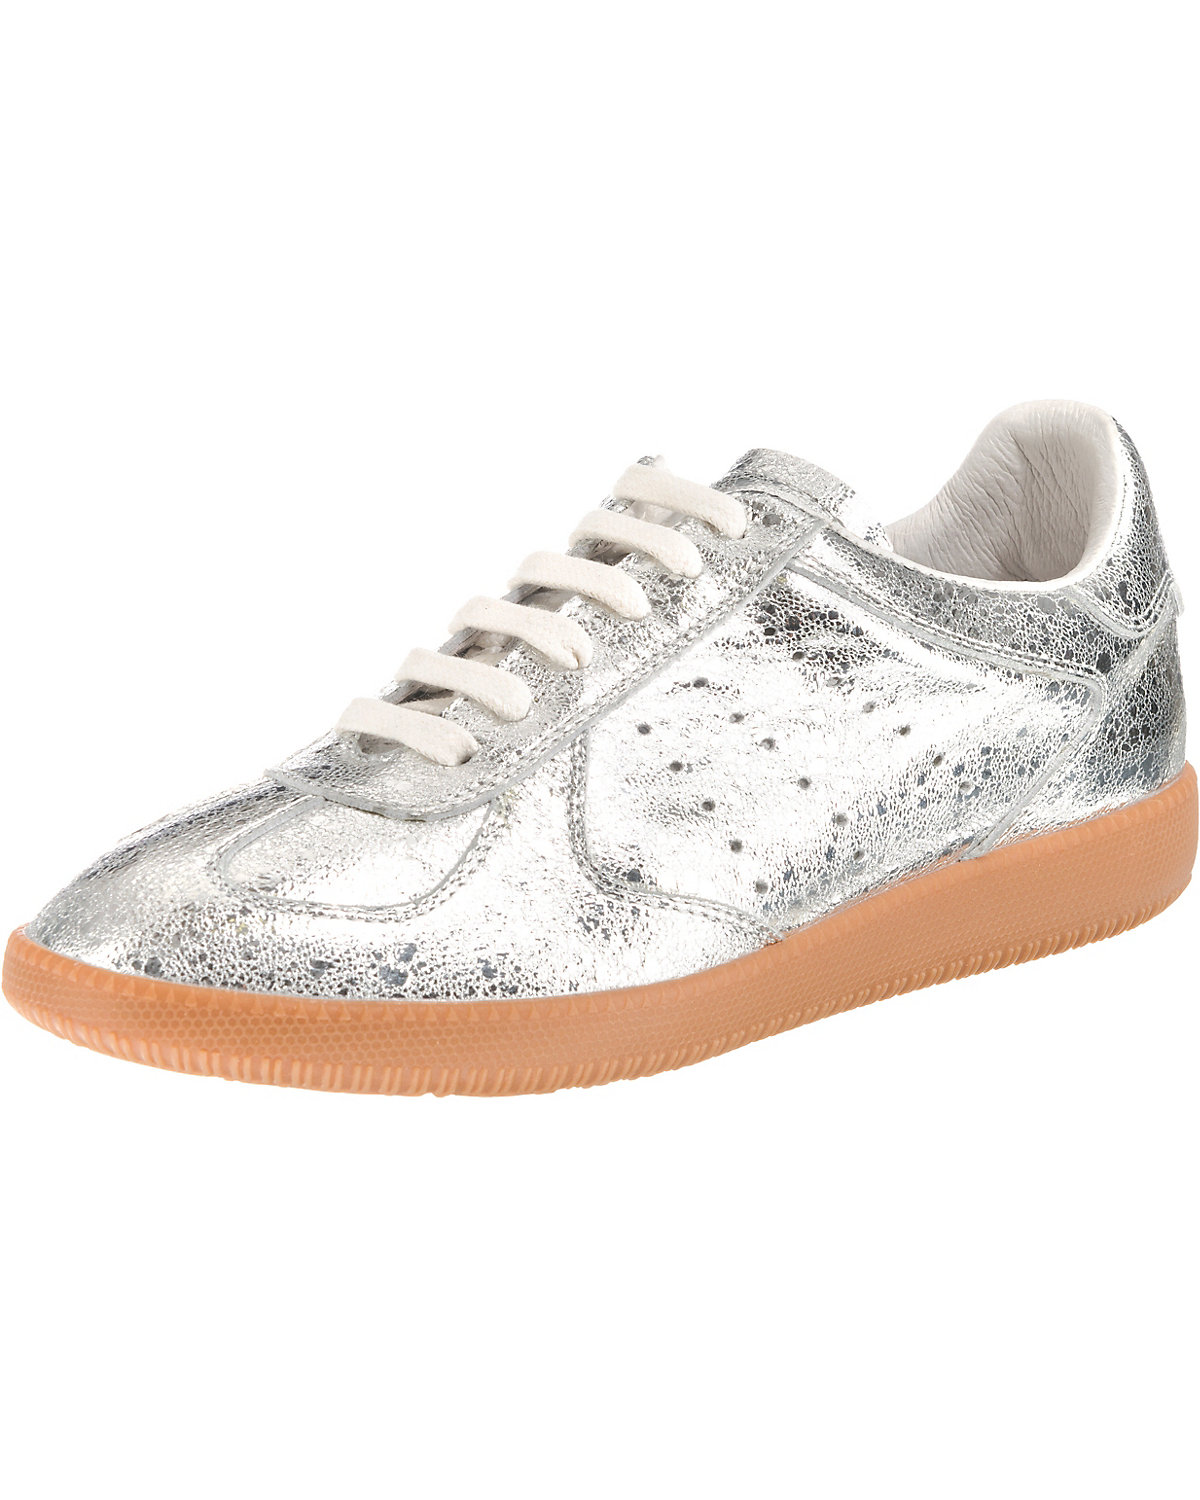 shoe the bear, Sneakers Low, silber